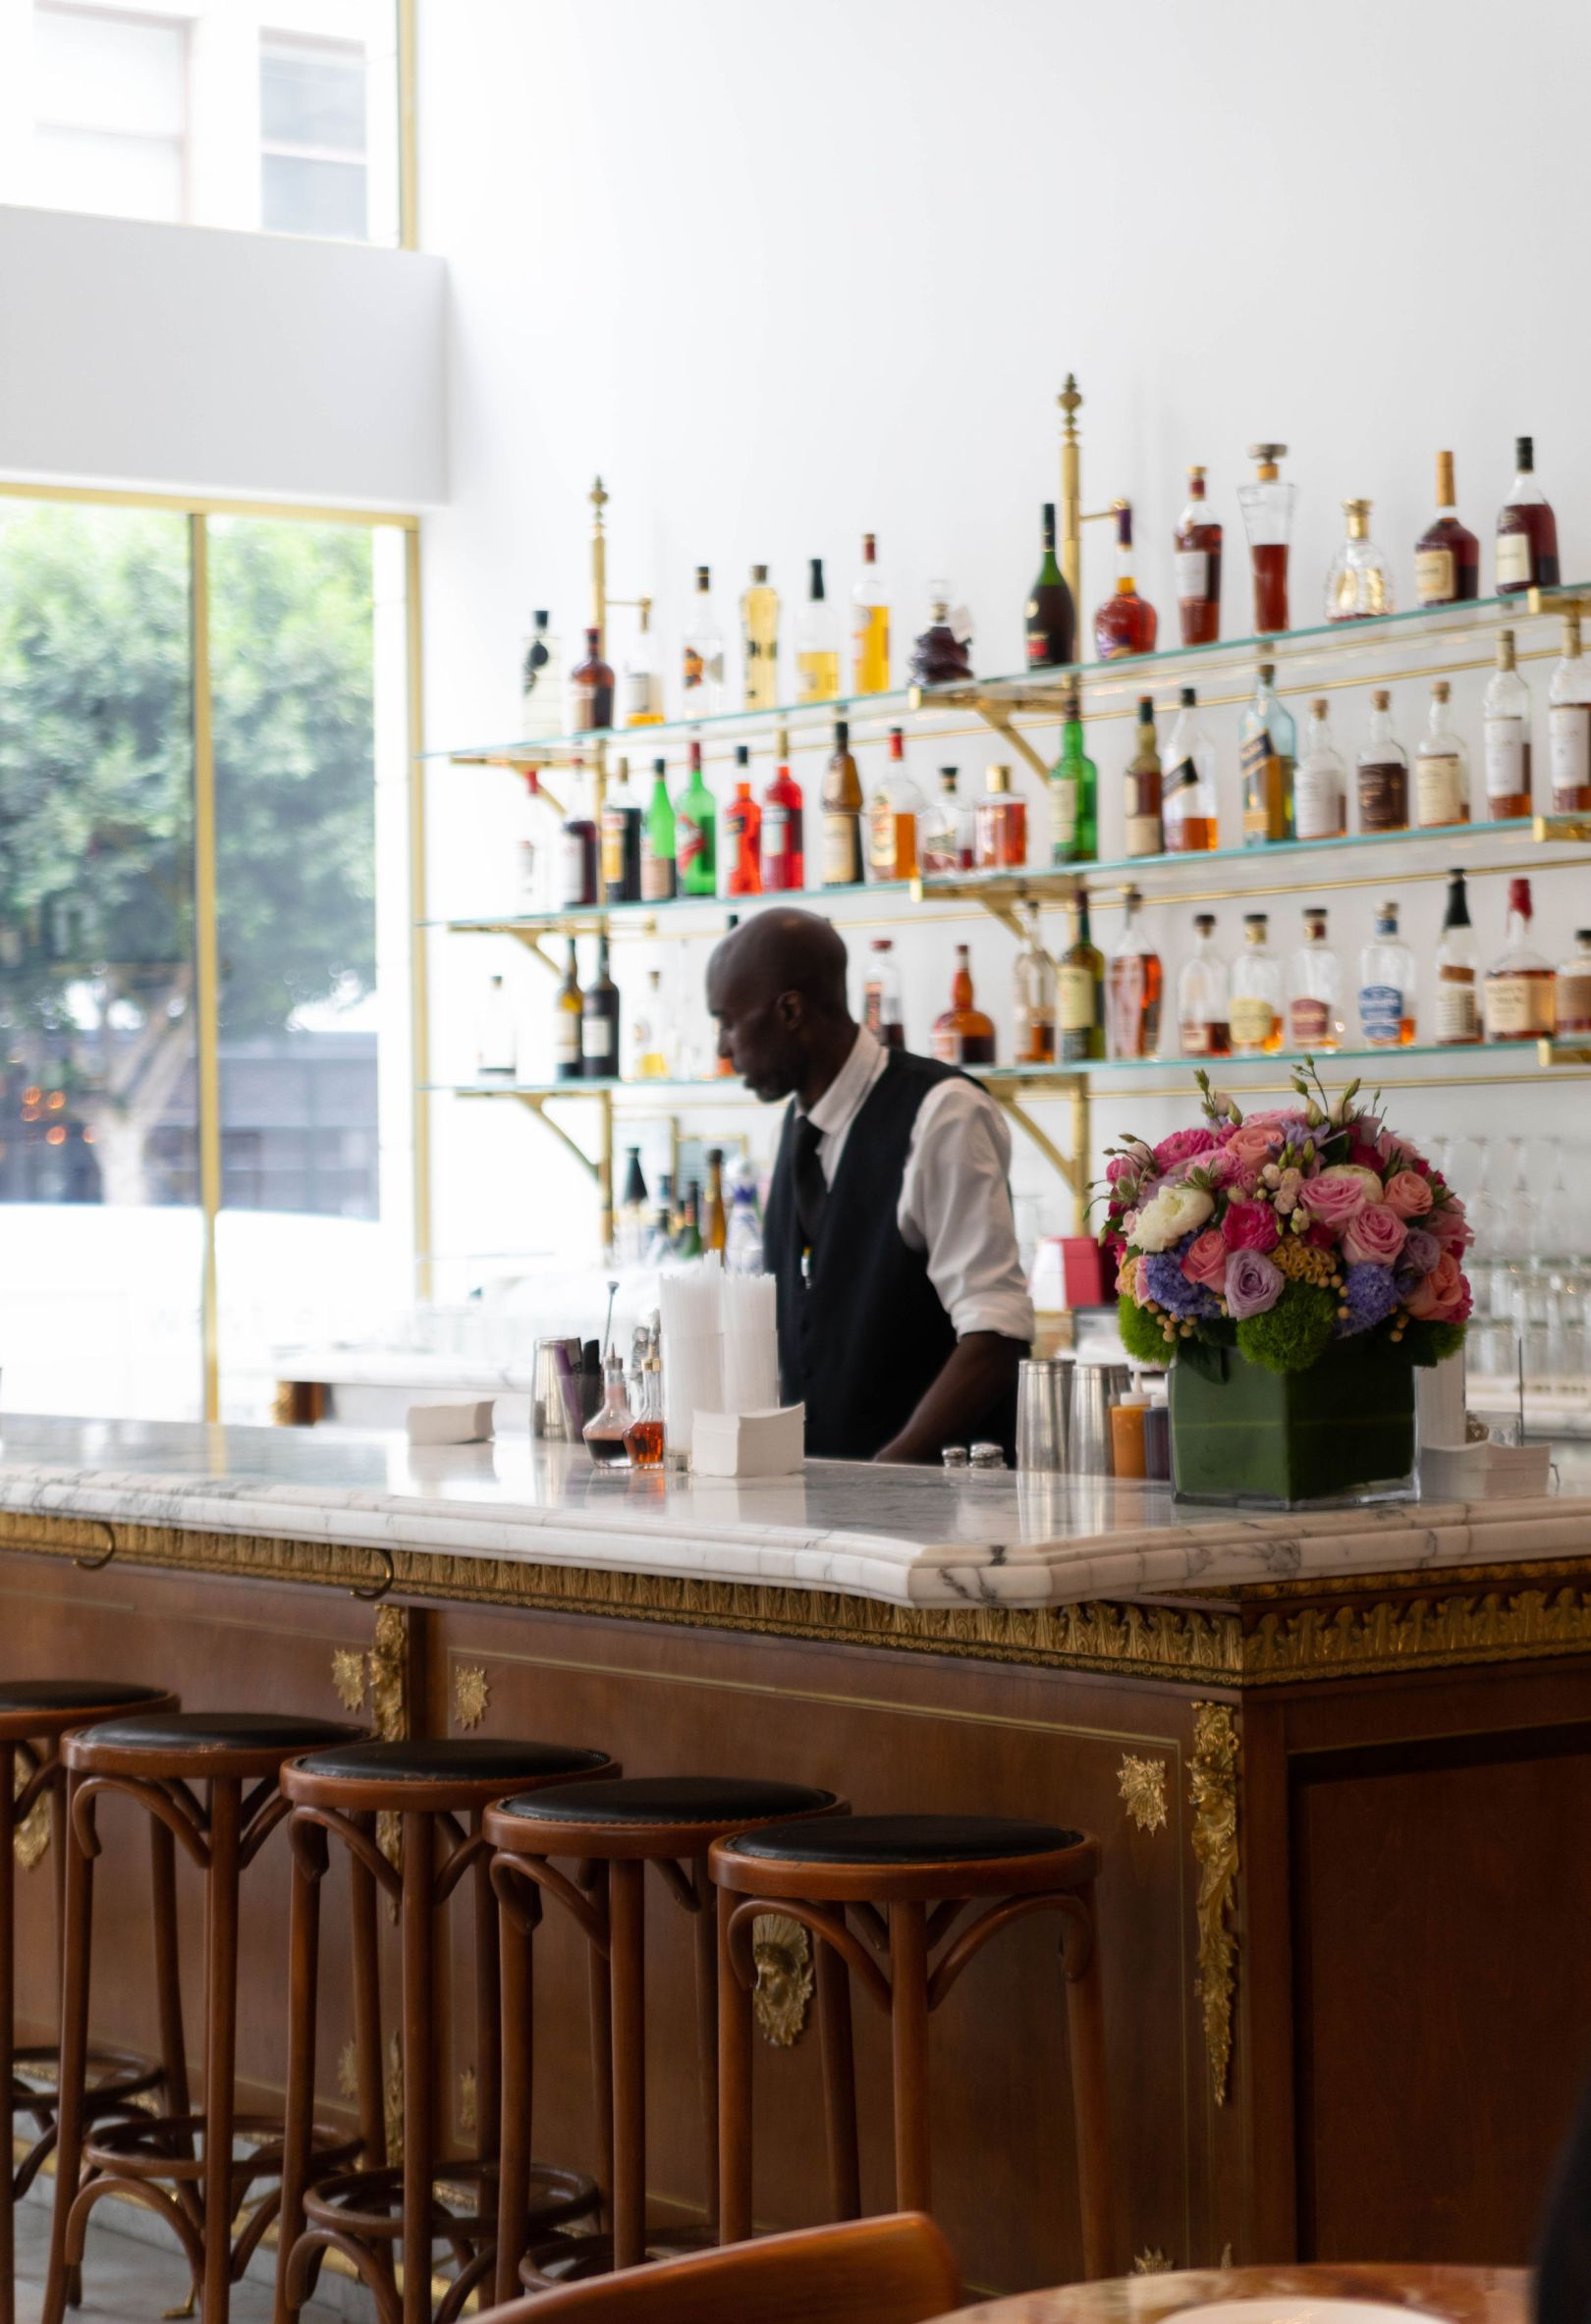 Los Angeles: The Complete Traveler's Guide by Annie Fairfax Bottega Louie